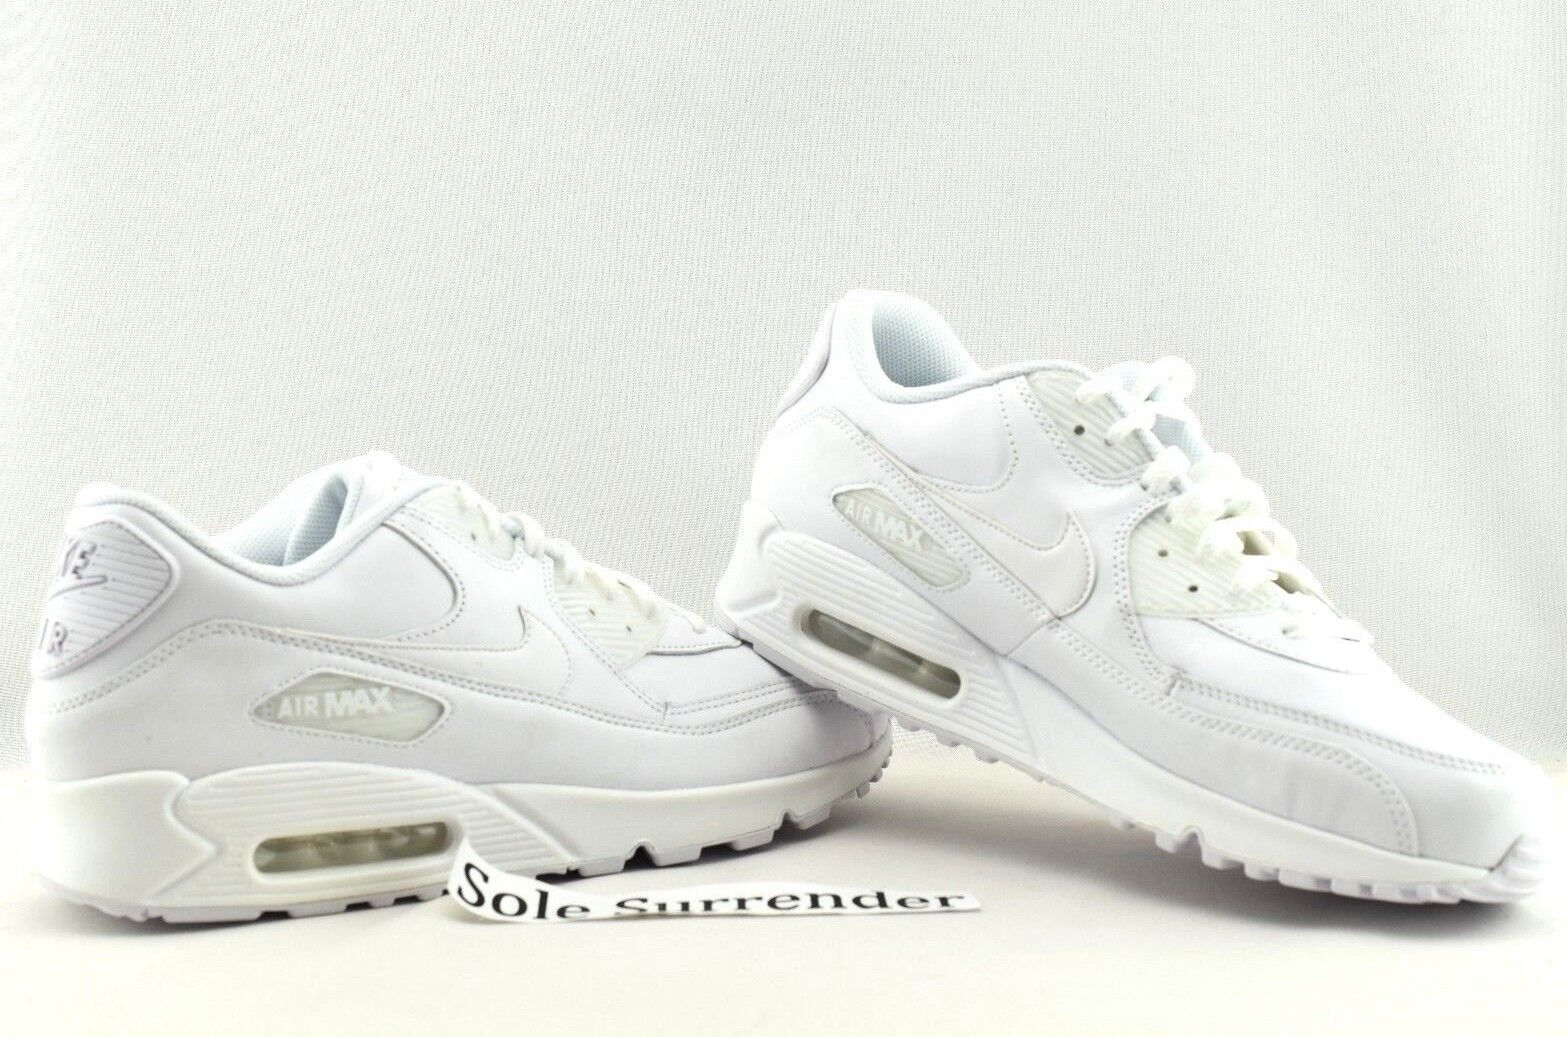 Nike Air Max 90 Leather CHOOSE SIZE 302519113 Triple Whiteout Retro OG